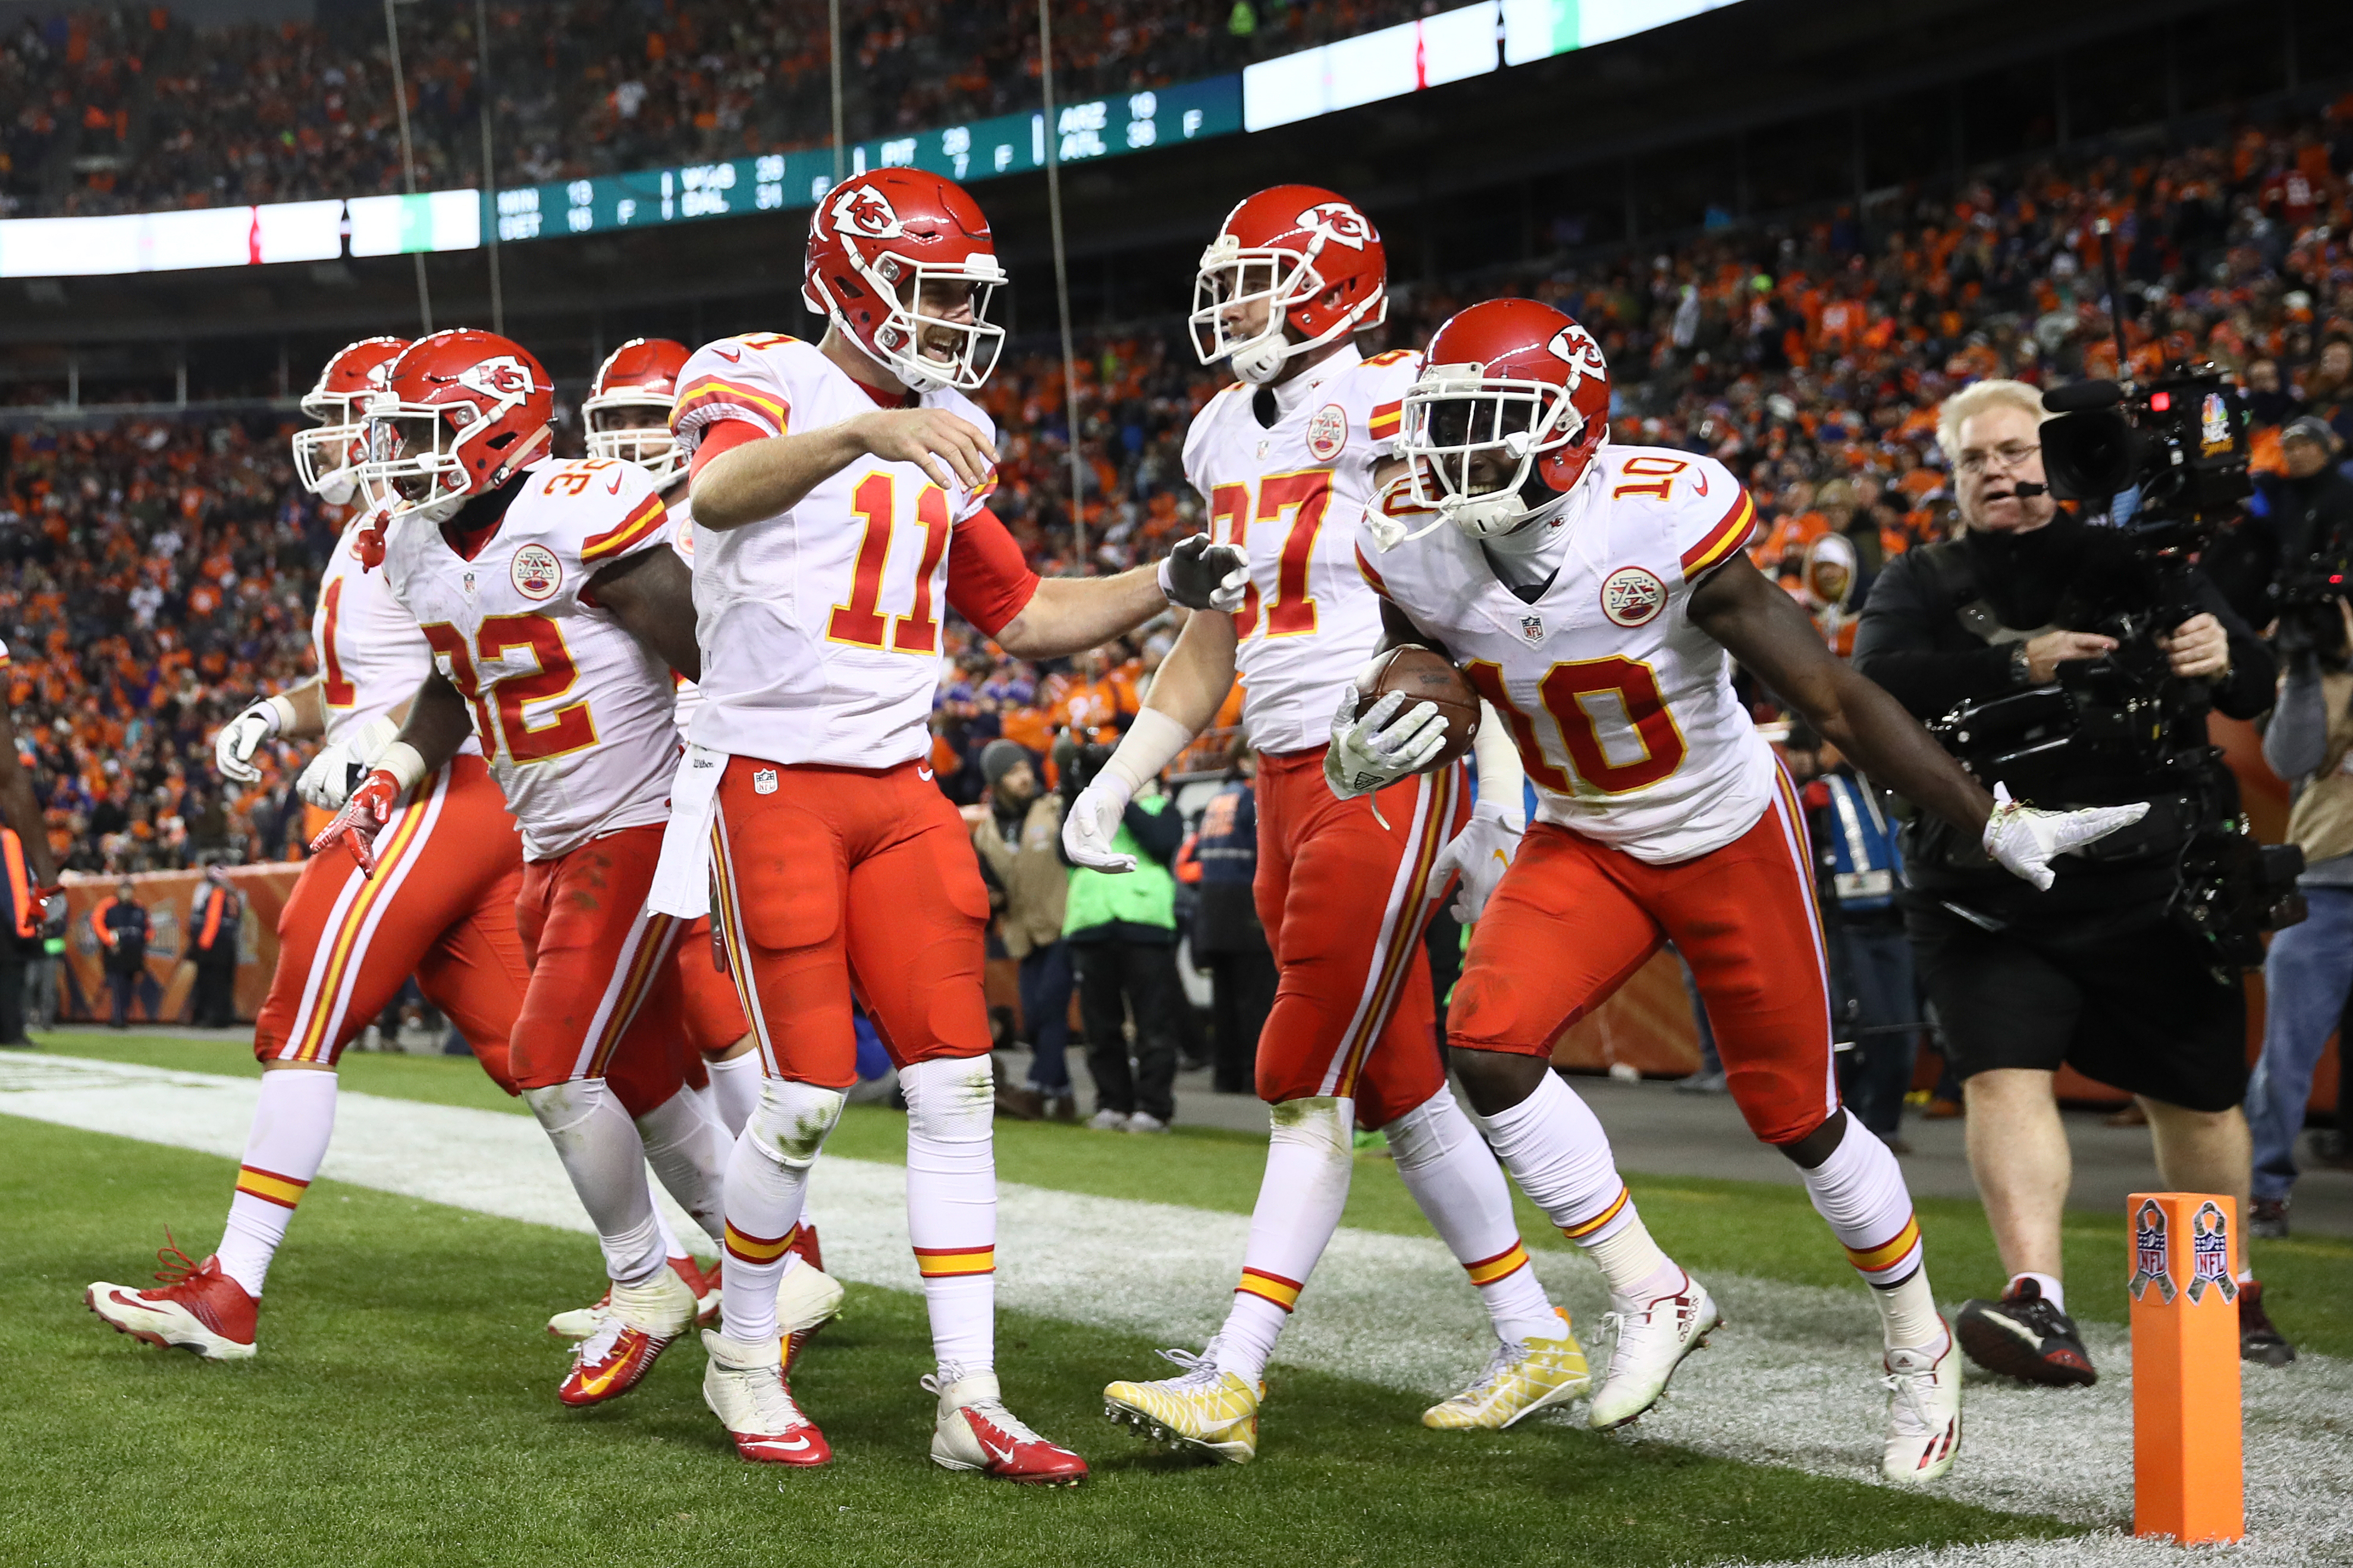 Quarterback Alex Smith #11 of the Kansas City Chiefs celebrates with Tyreek Hill #10 after he scored a touchdown in the third quarter of the game against the Denver Broncos at Sports Authority Field at Mile High on November 27, 2016 in Denver, Colorado. (Photo by Ezra Shaw/Getty Images)